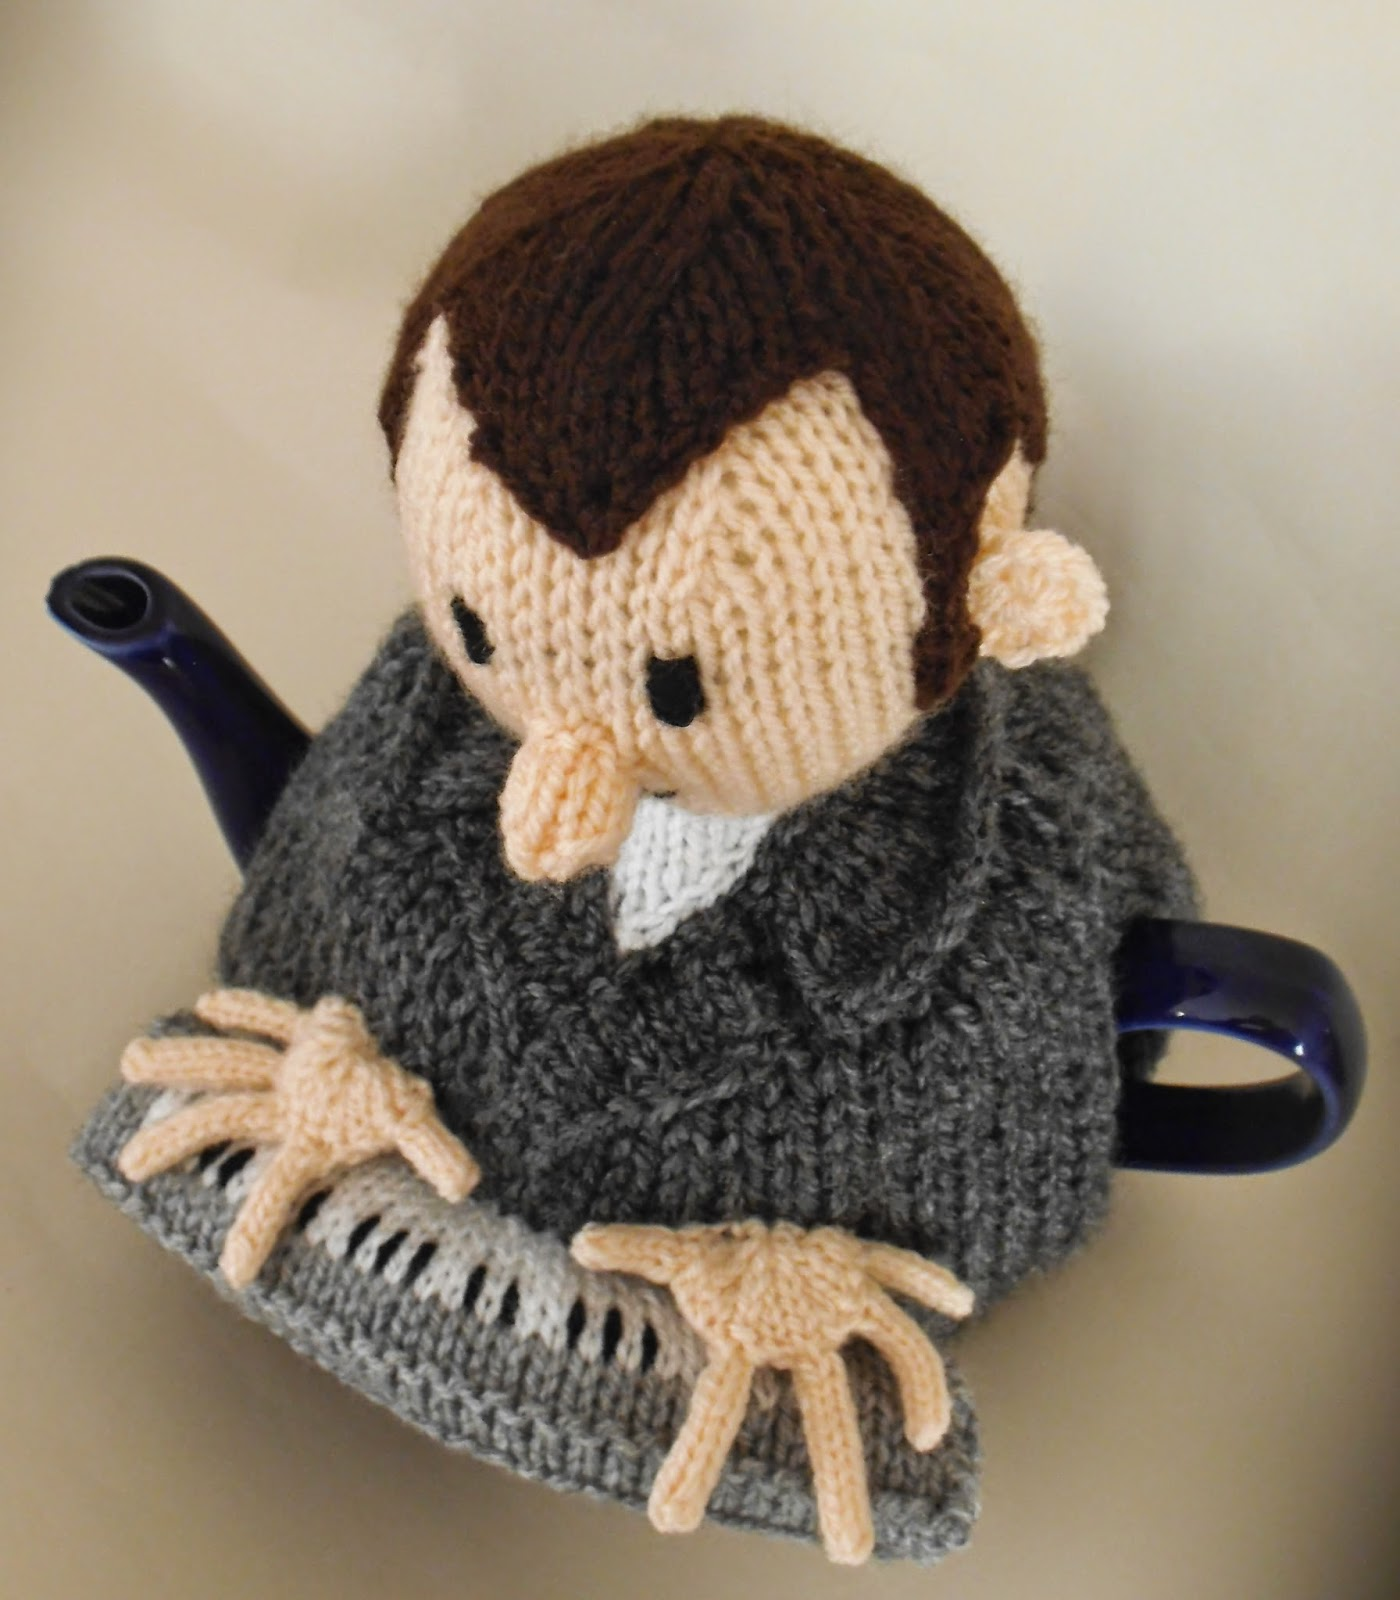 Music Teacher knitting pattern